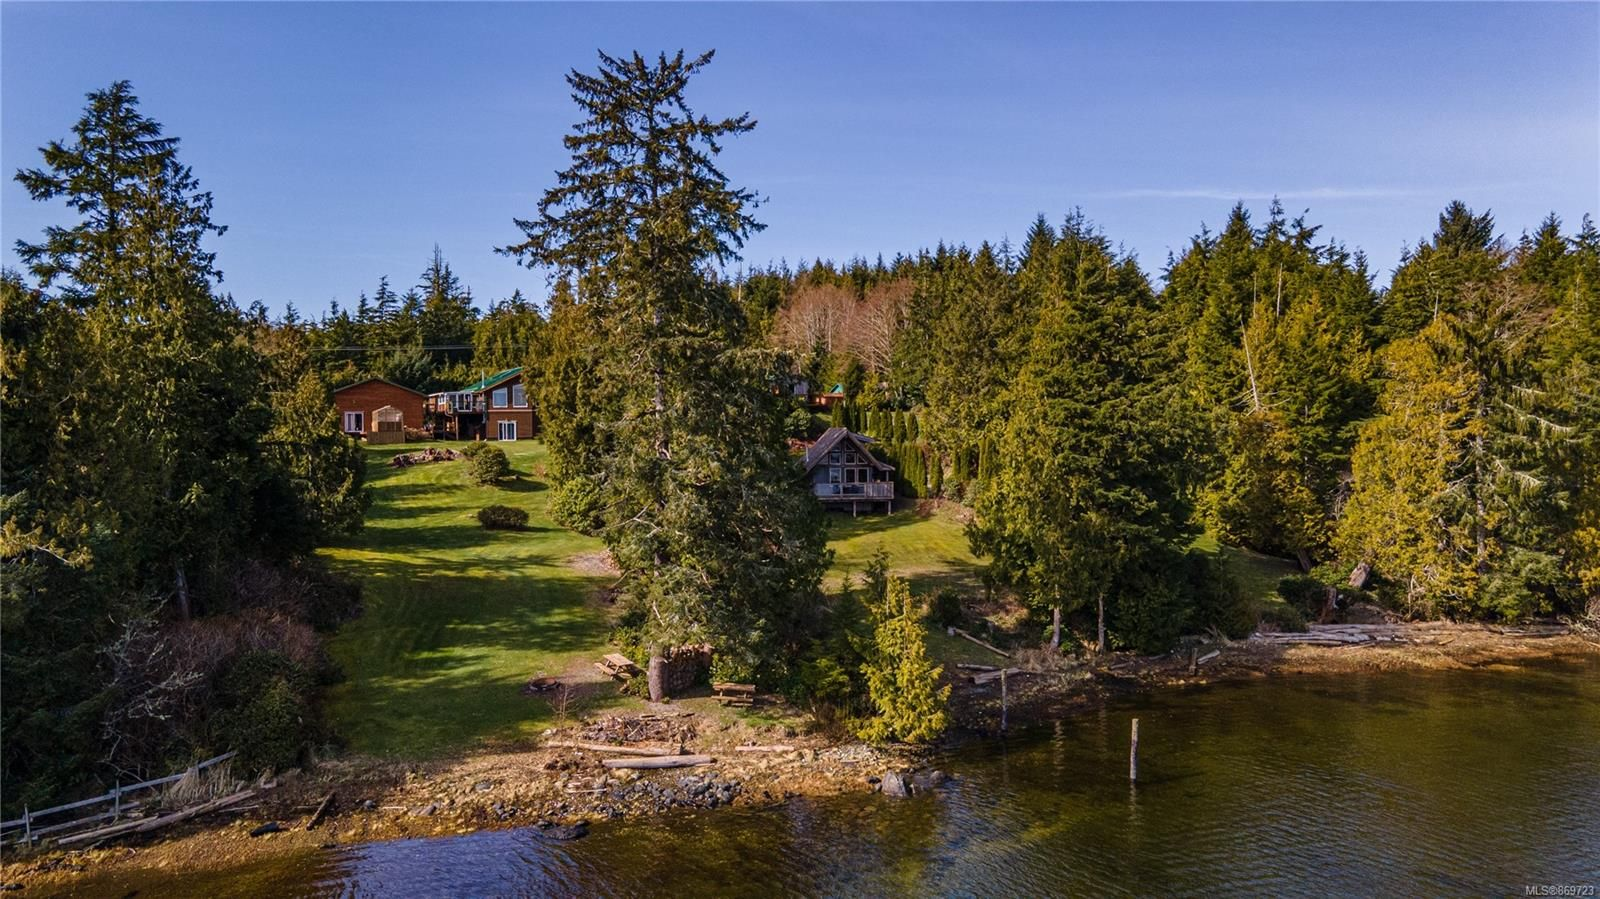 Main Photo: 2345 Tofino-Ucluelet Hwy in : PA Ucluelet House for sale (Port Alberni)  : MLS®# 869723